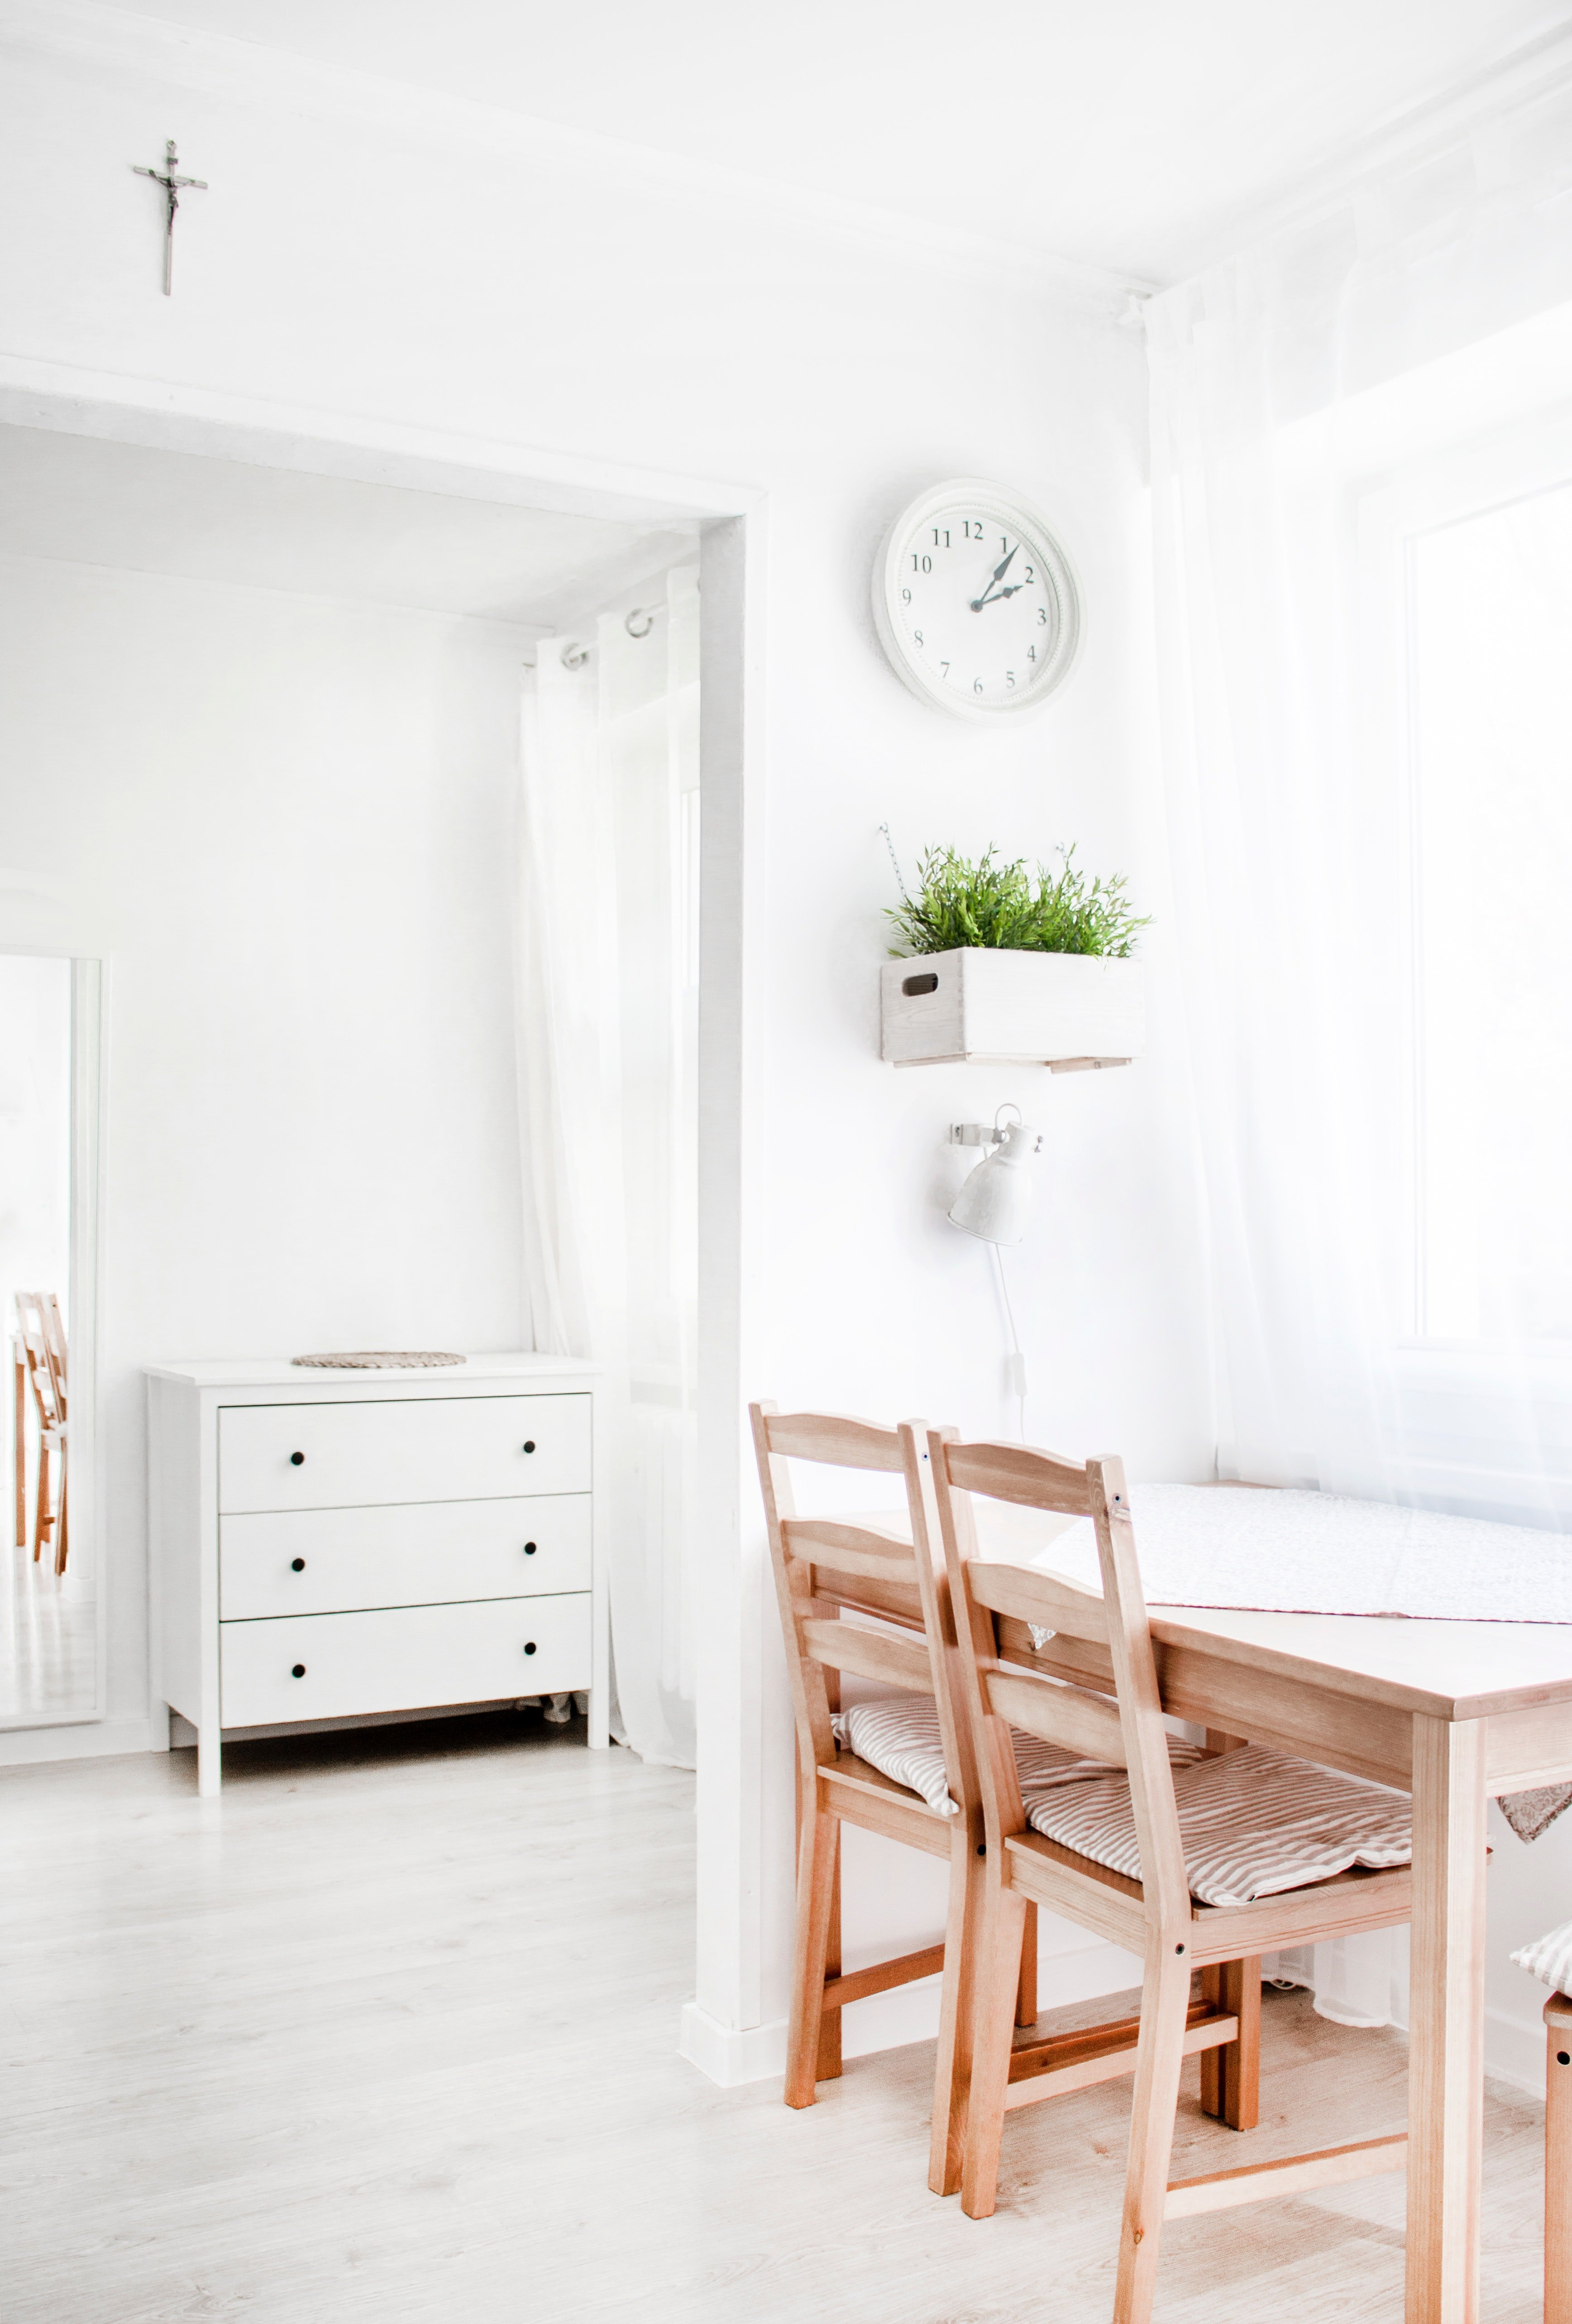 Minimalism And Motherhood: 3 Things You Need To Declutter To Make It Work